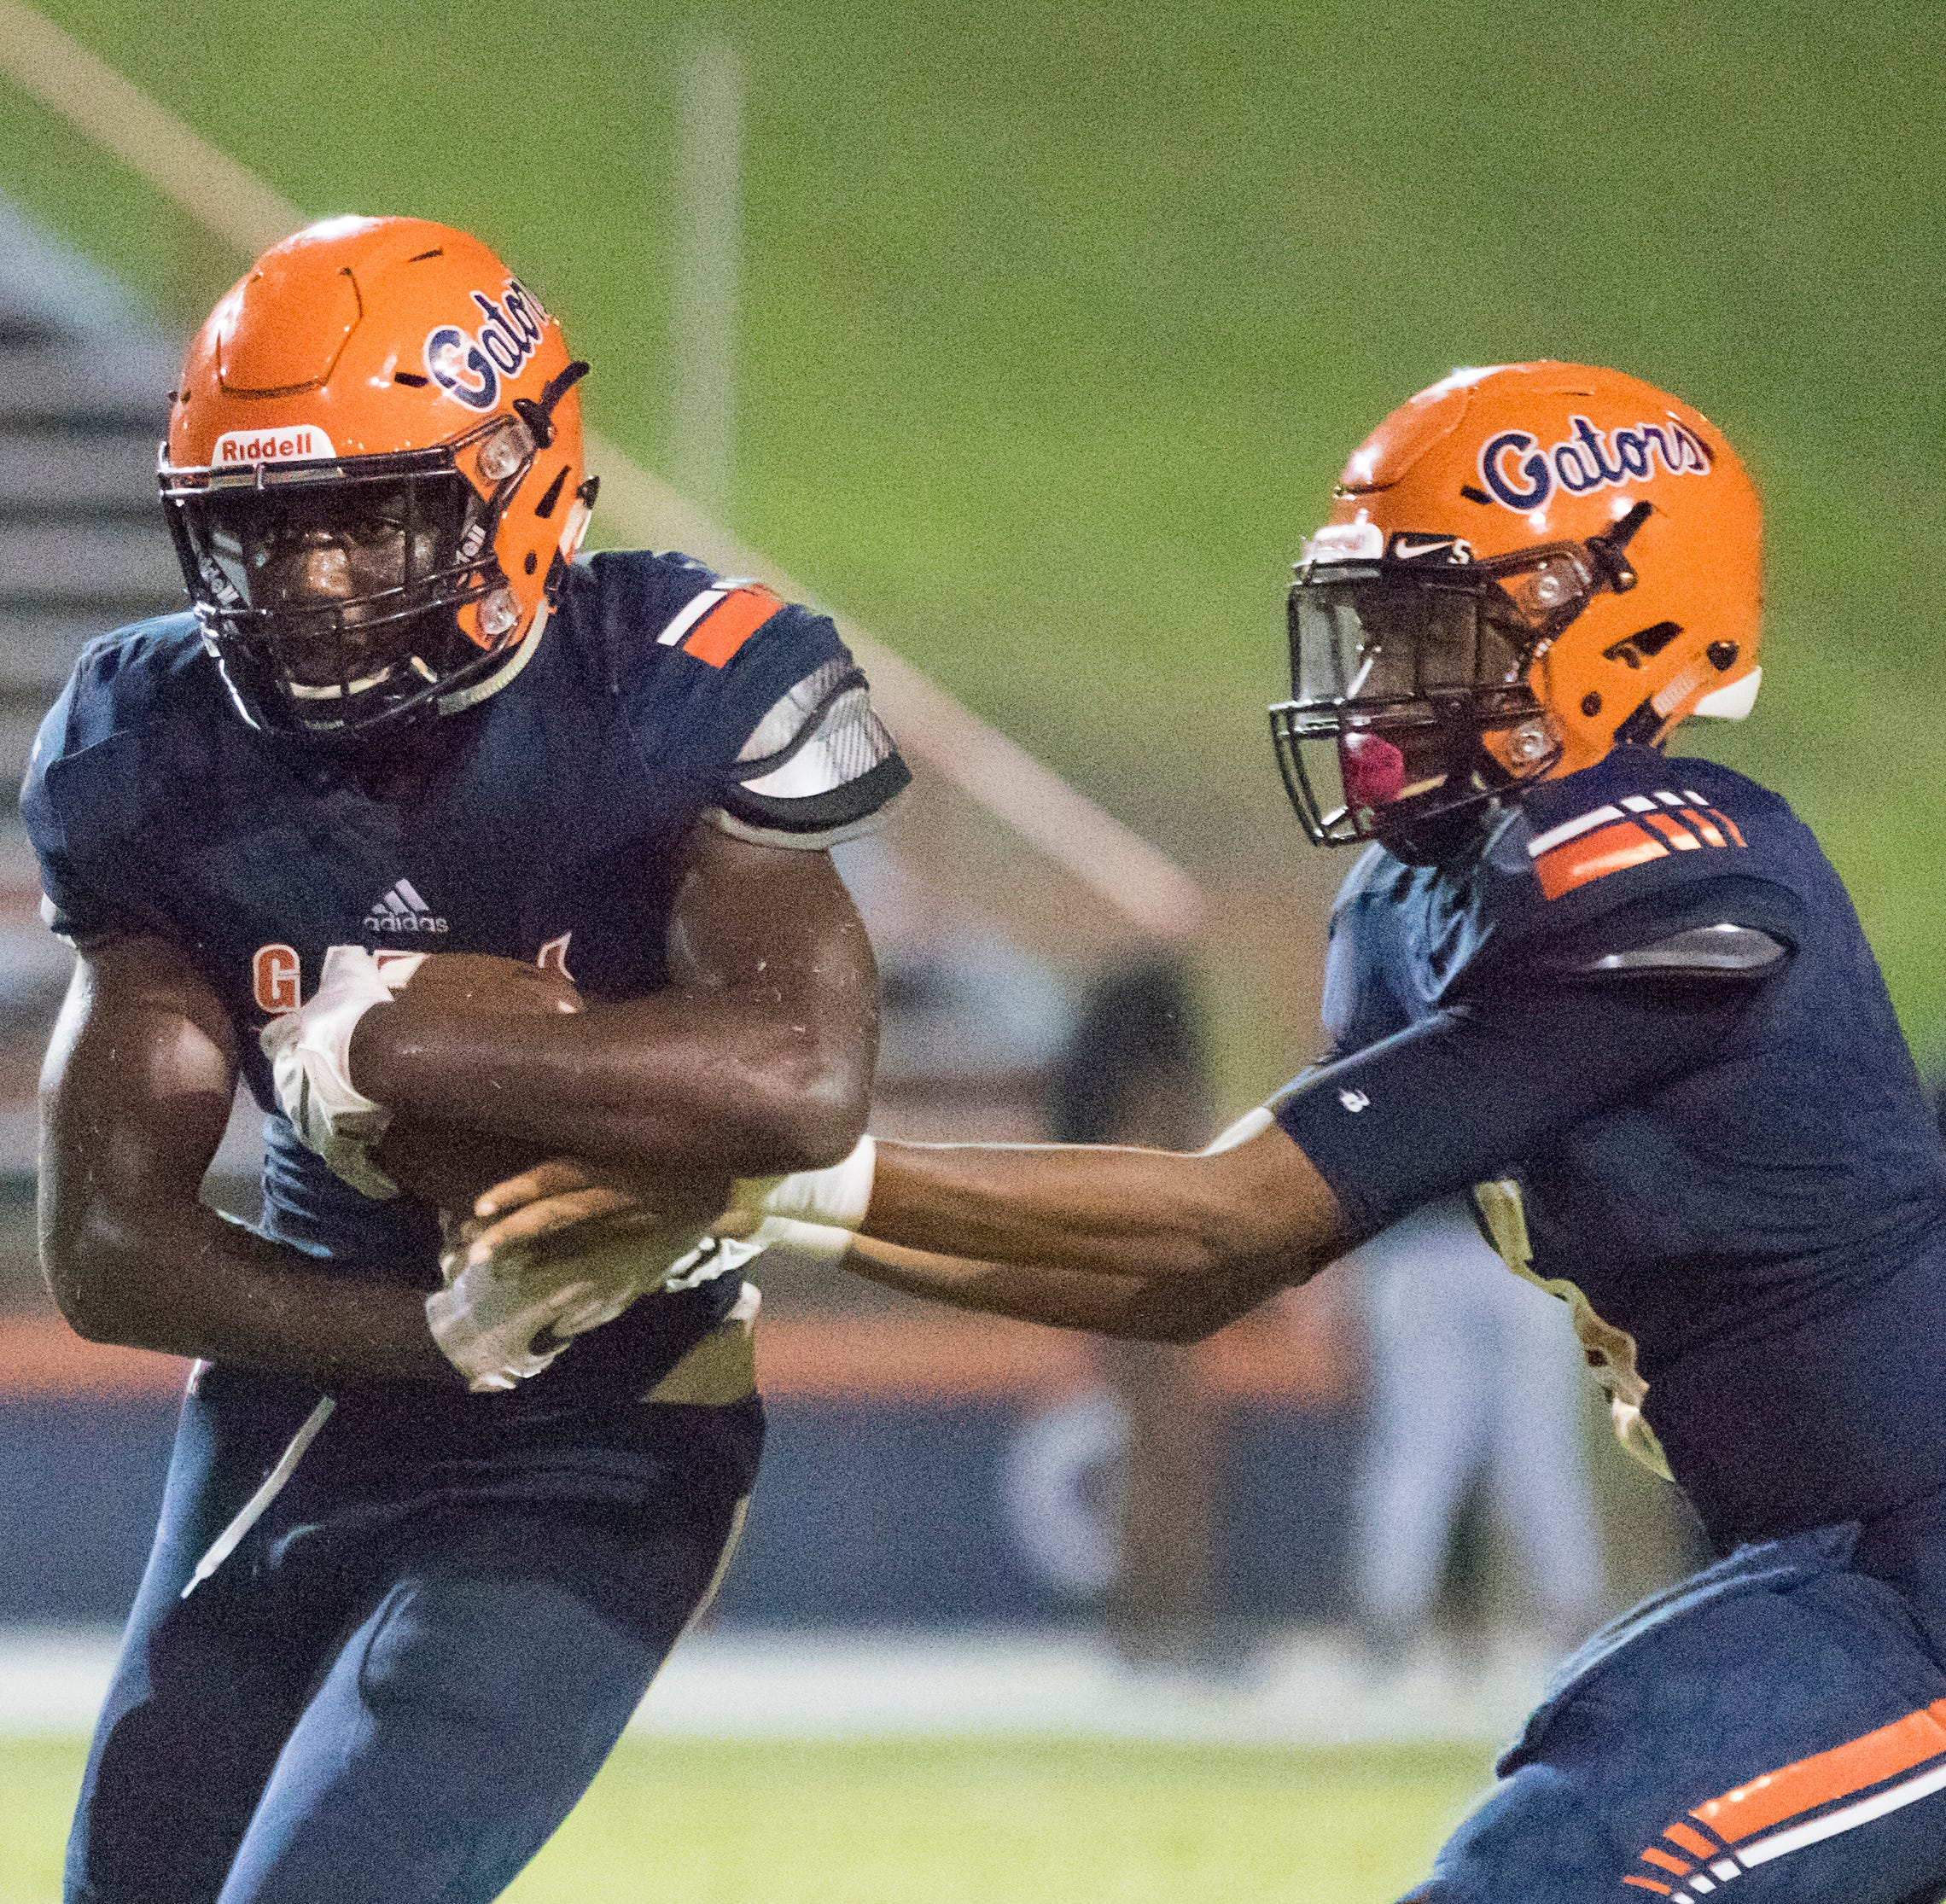 Gator quarterback (5) hands off to Frank Peasant (1) during the West Florida vs Escambia football game at Escambia High School in Pensacola on Thursday, August 23, 2018.